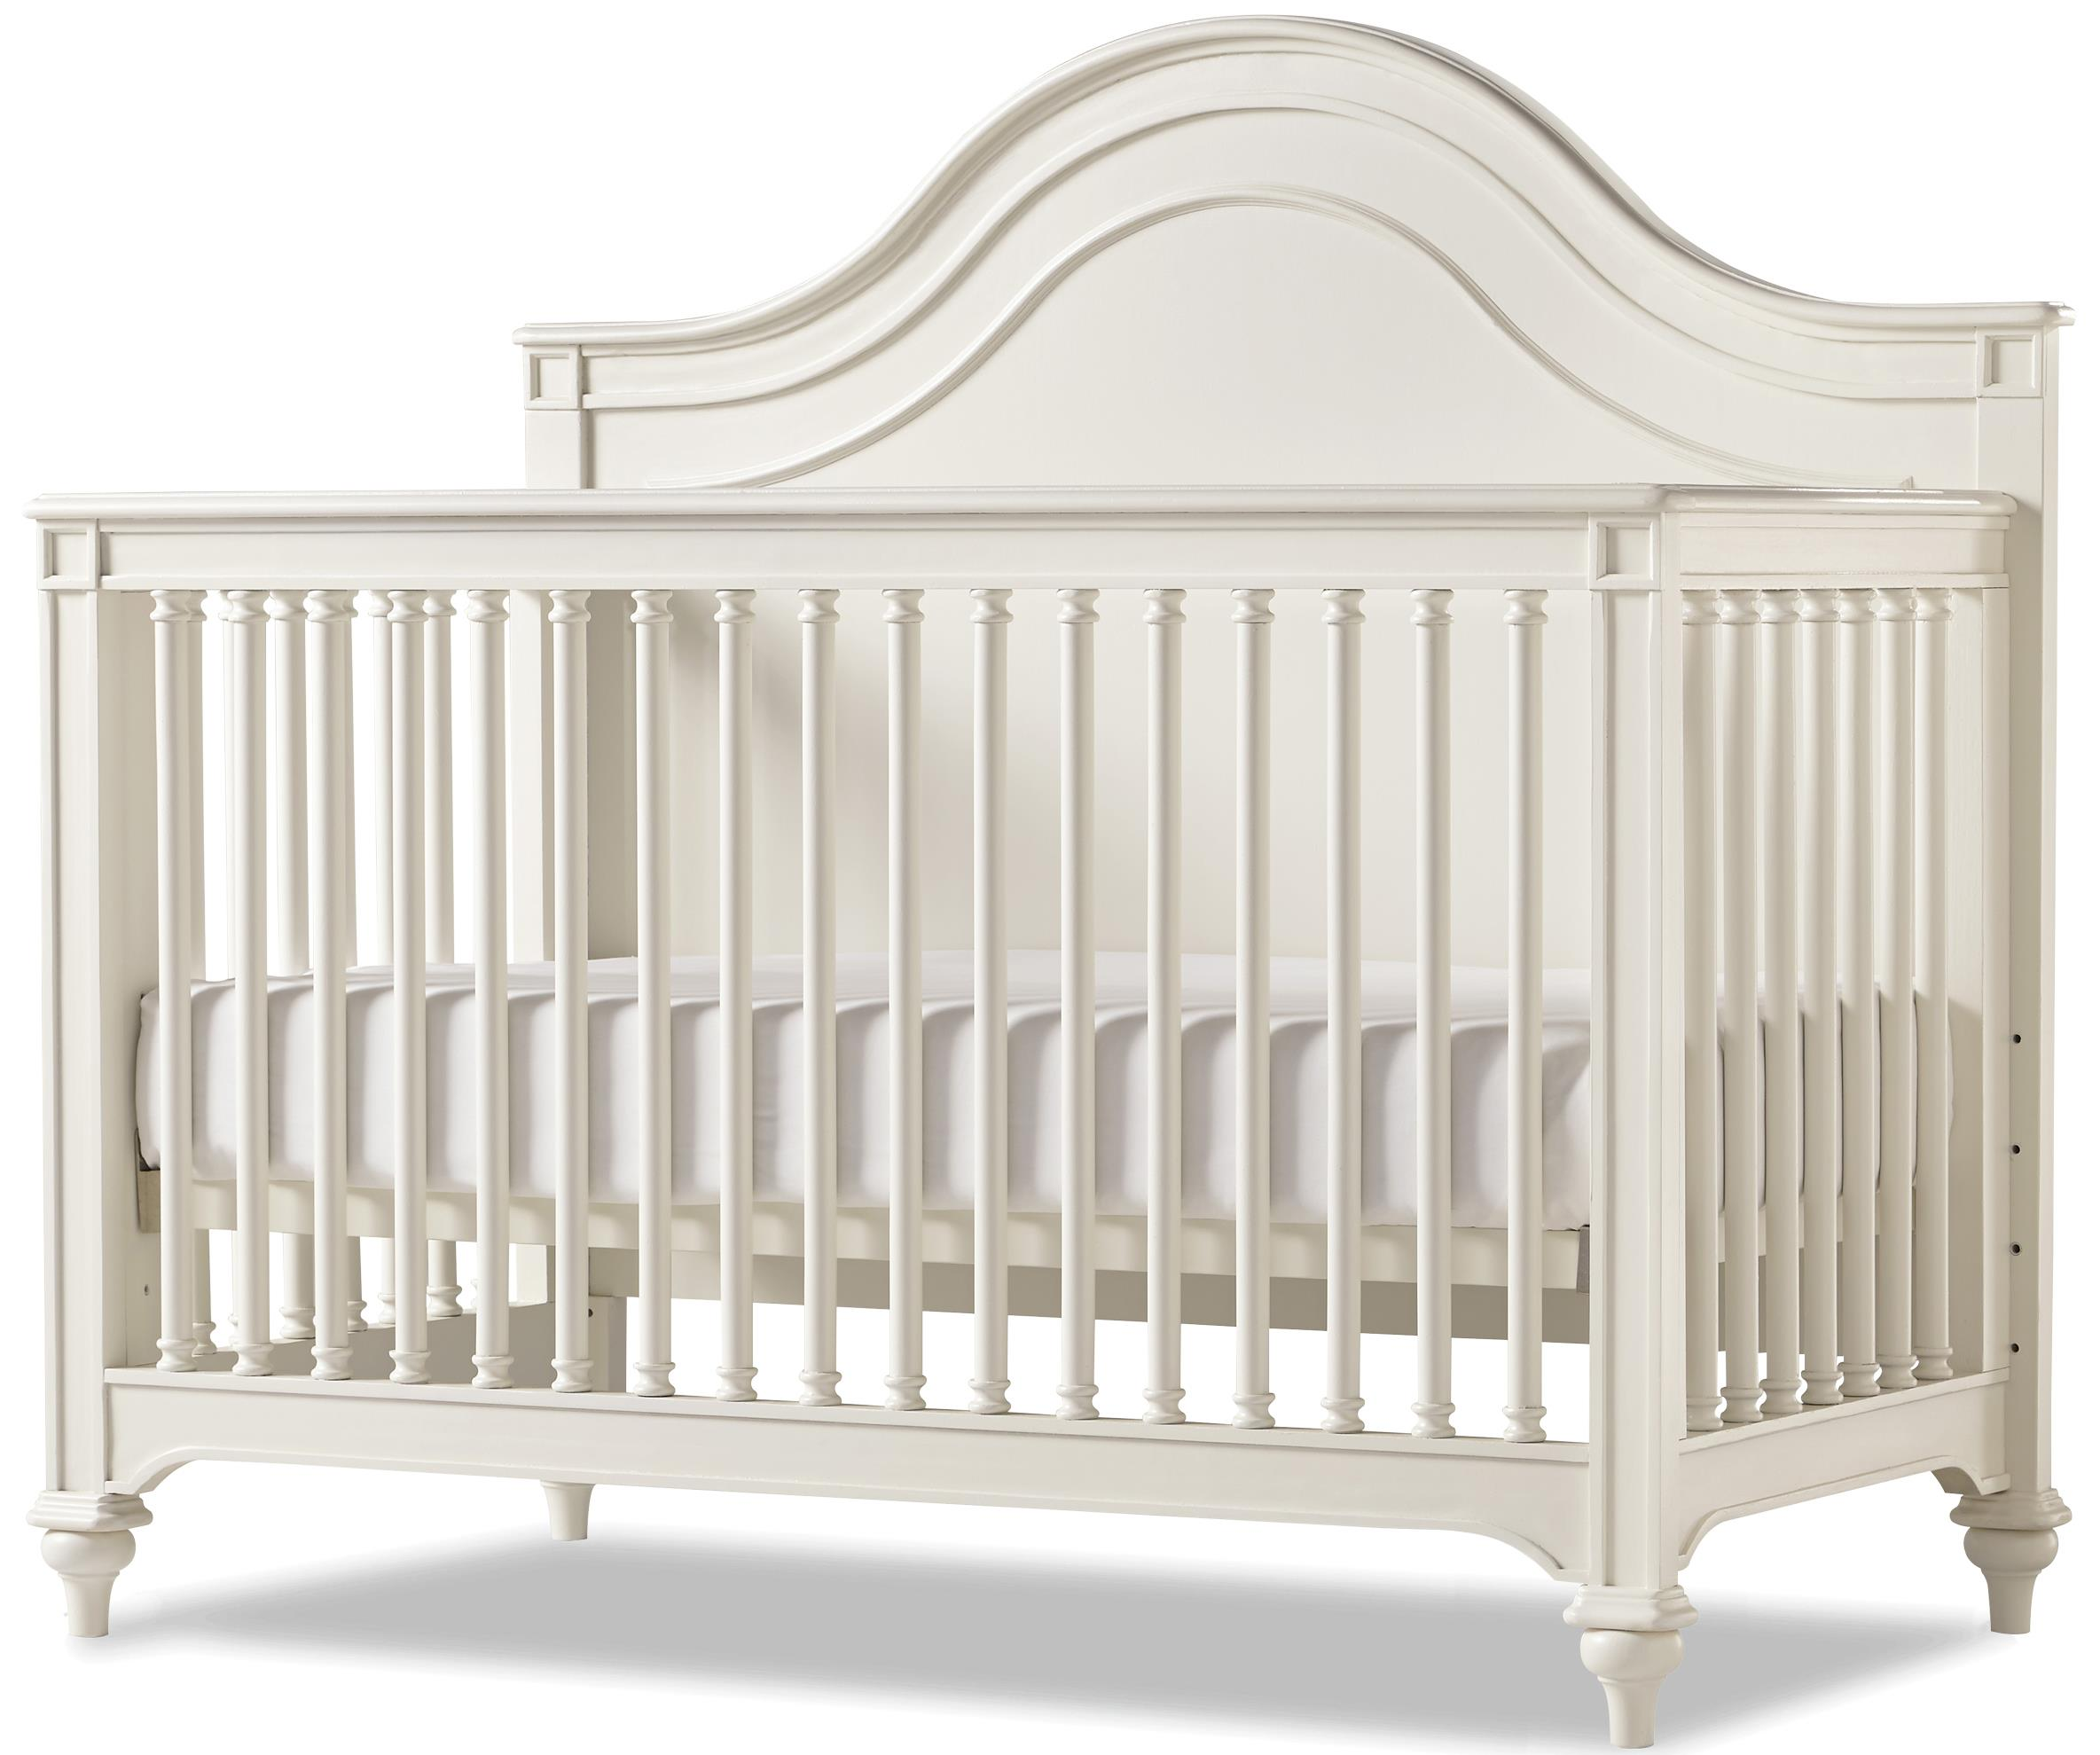 Smartstuff Genevieve Convertible Crib - Item Number: 434A310